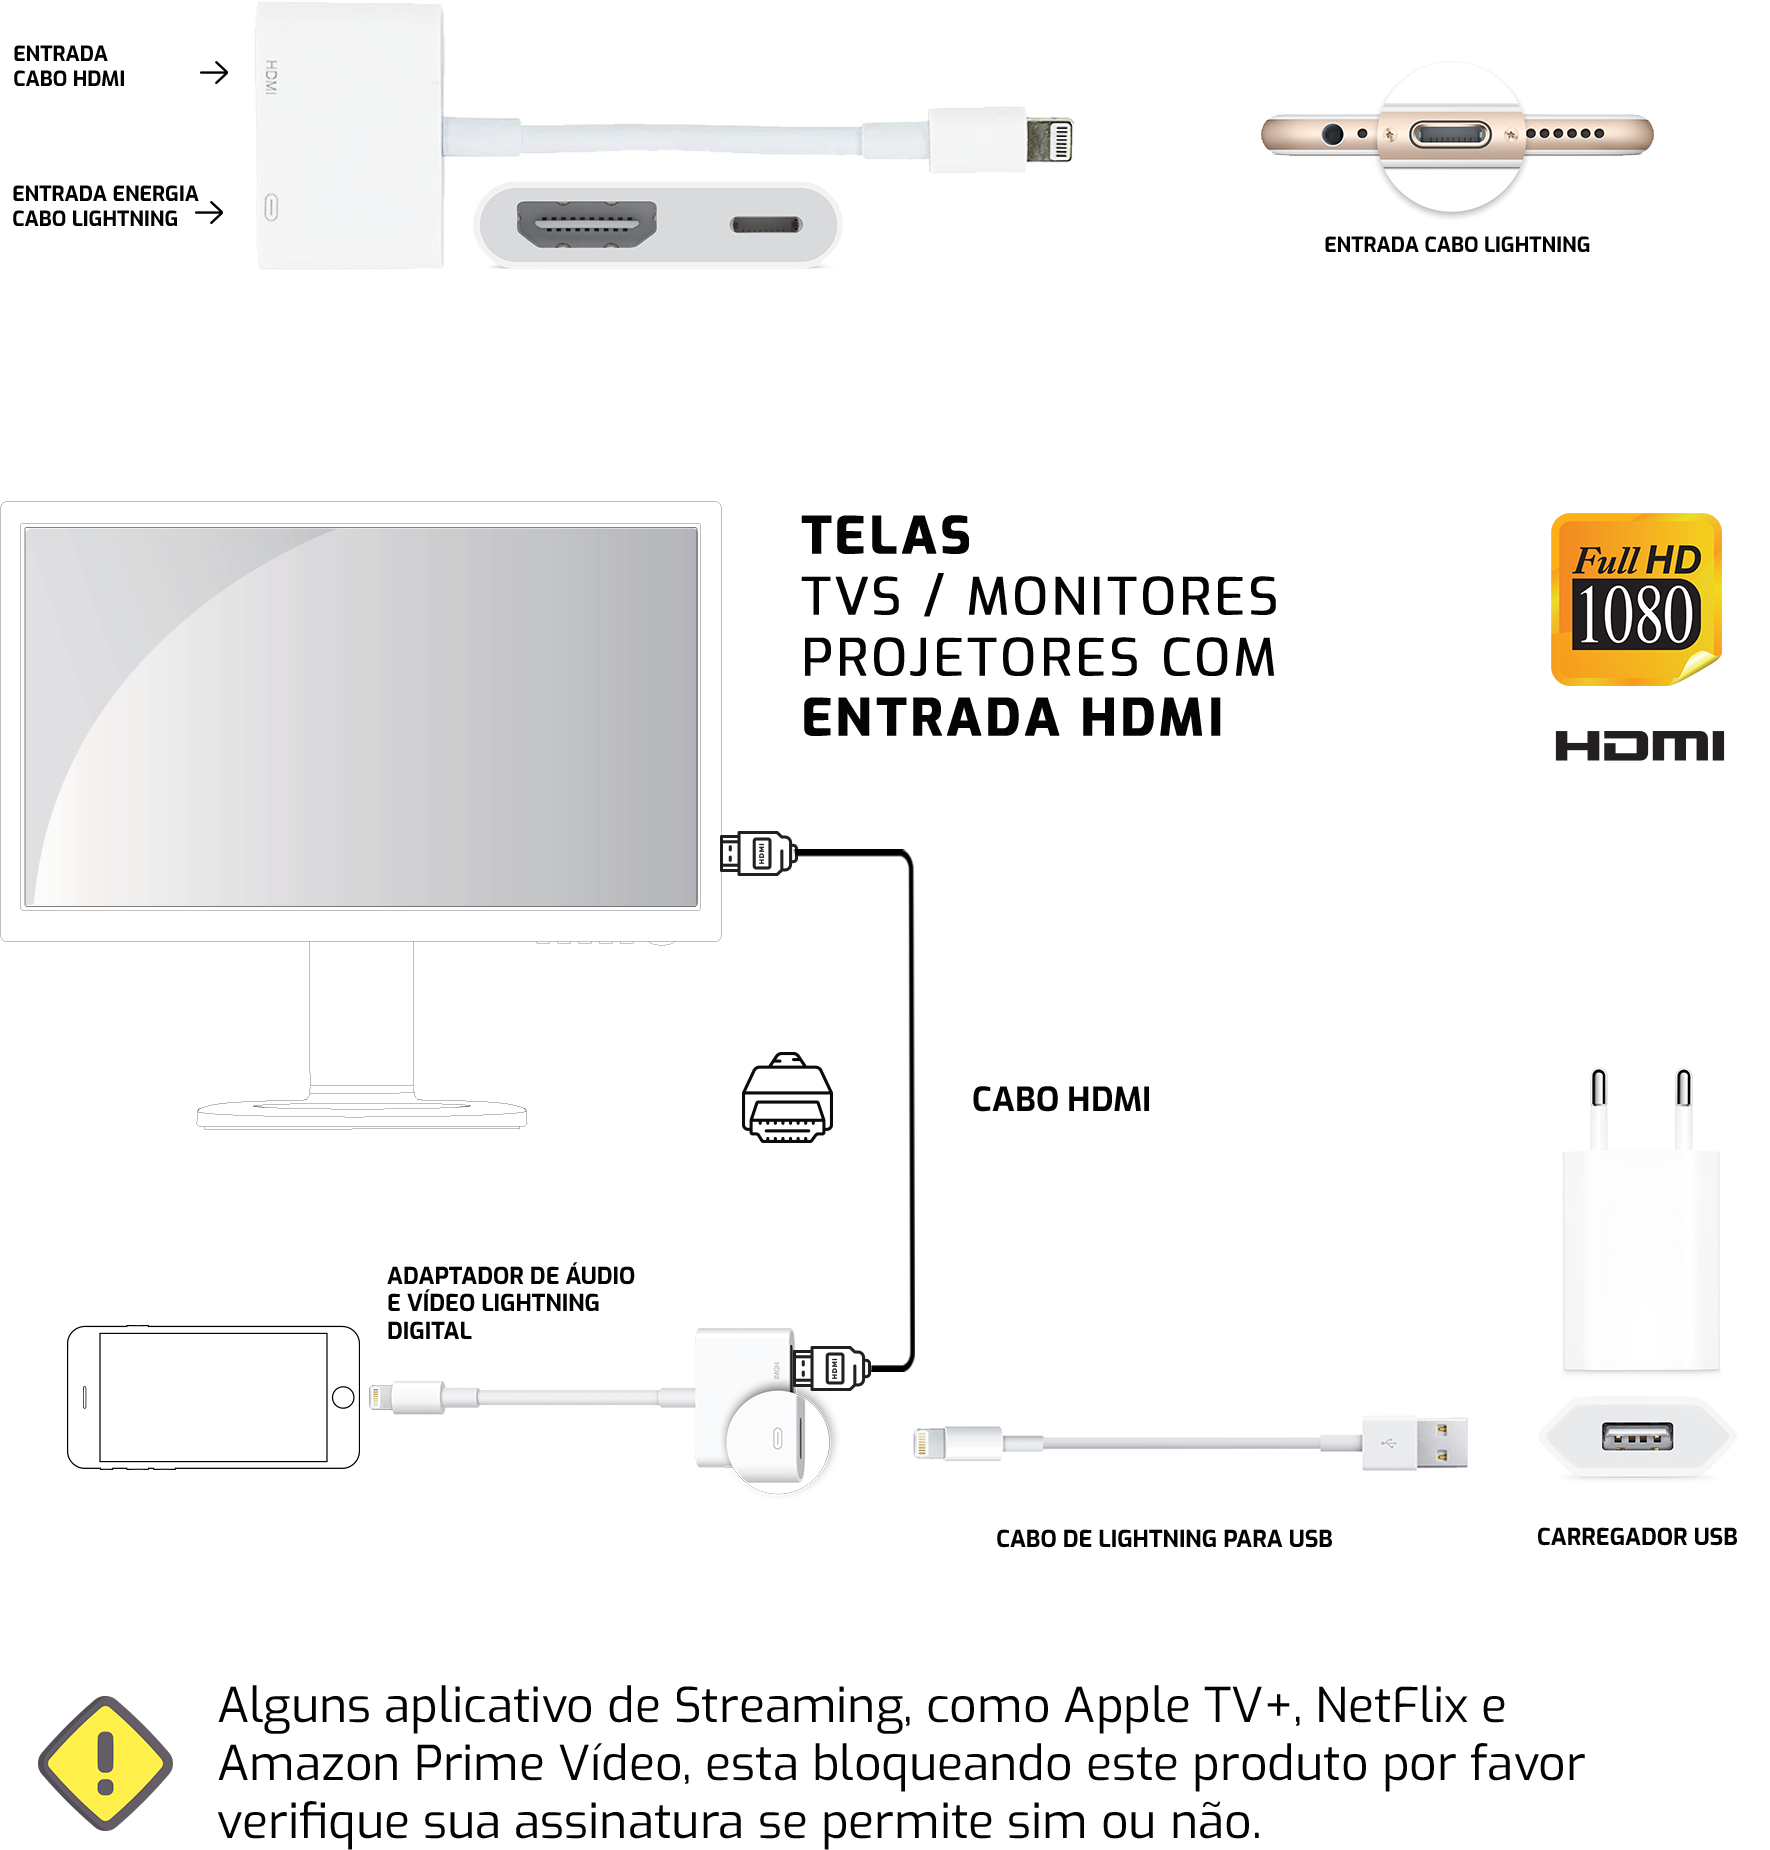 Adaptador de Áudio e Vídeo Lightning Digital para Iphone/Ipad